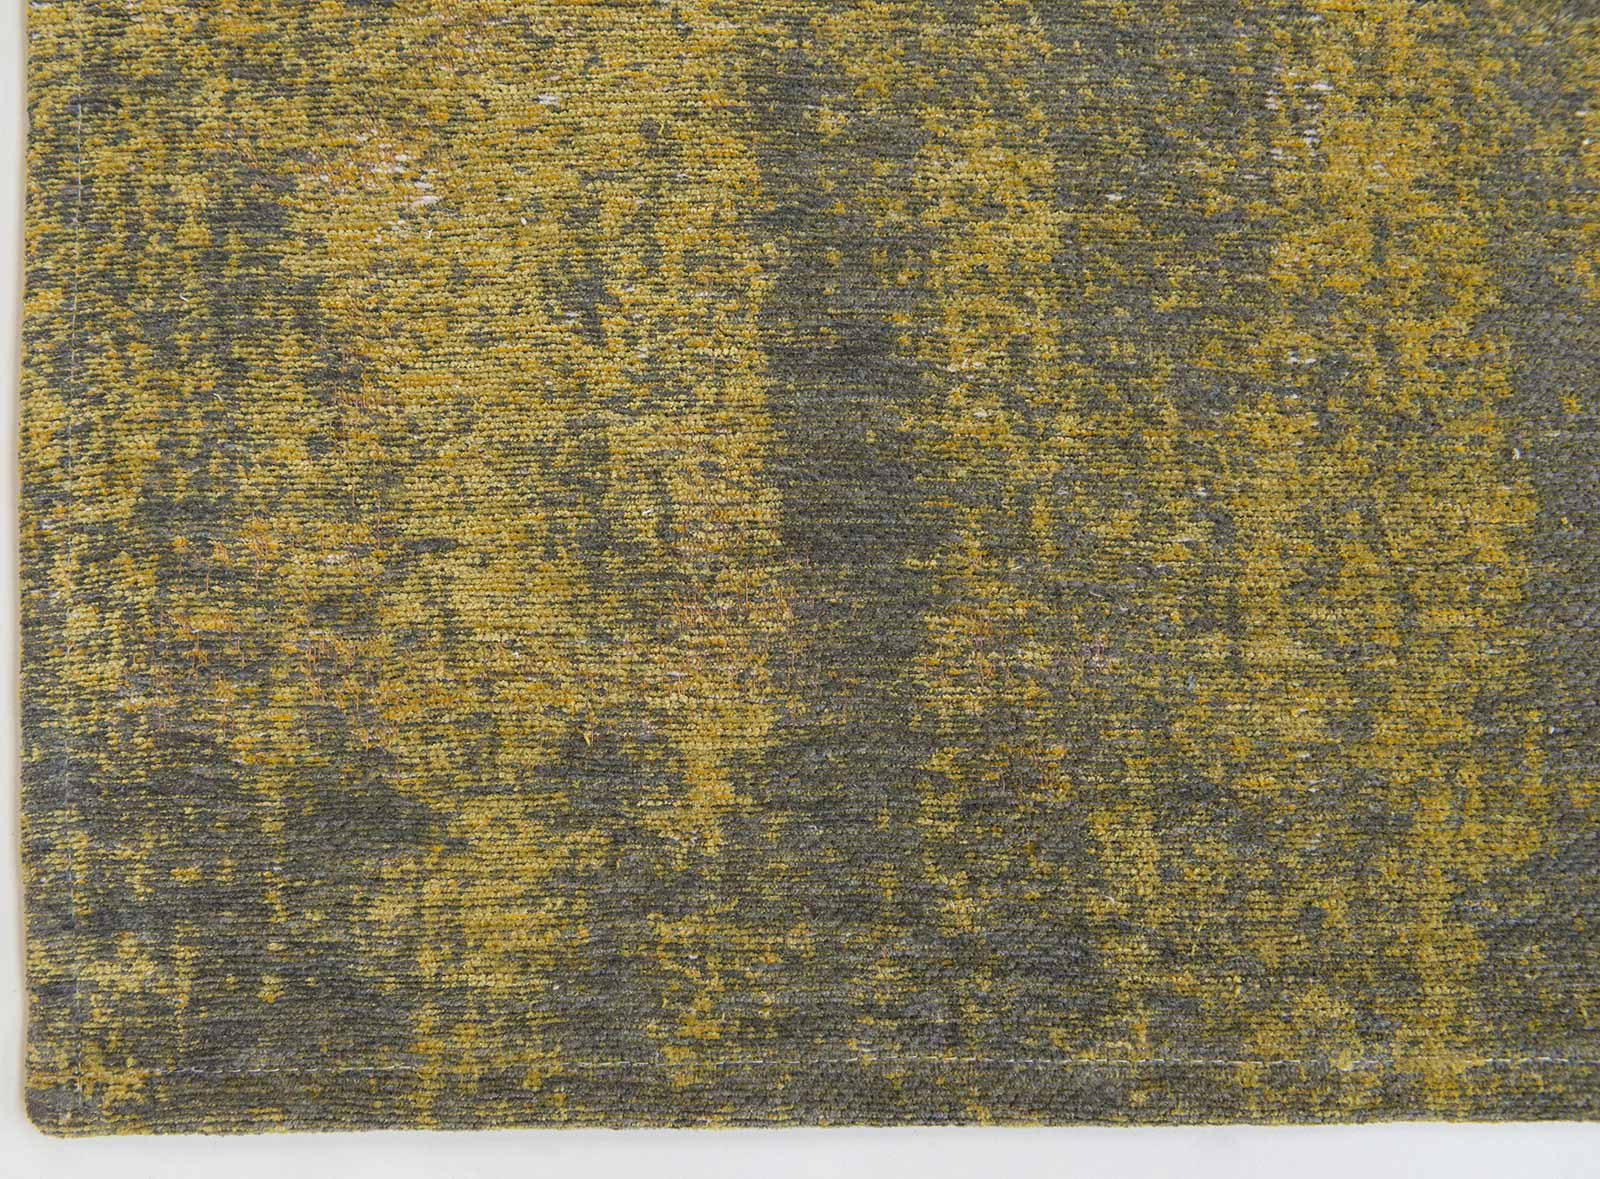 rugs Louis De Poortere LX8638 Fading World Generation Yuzu Cream corner